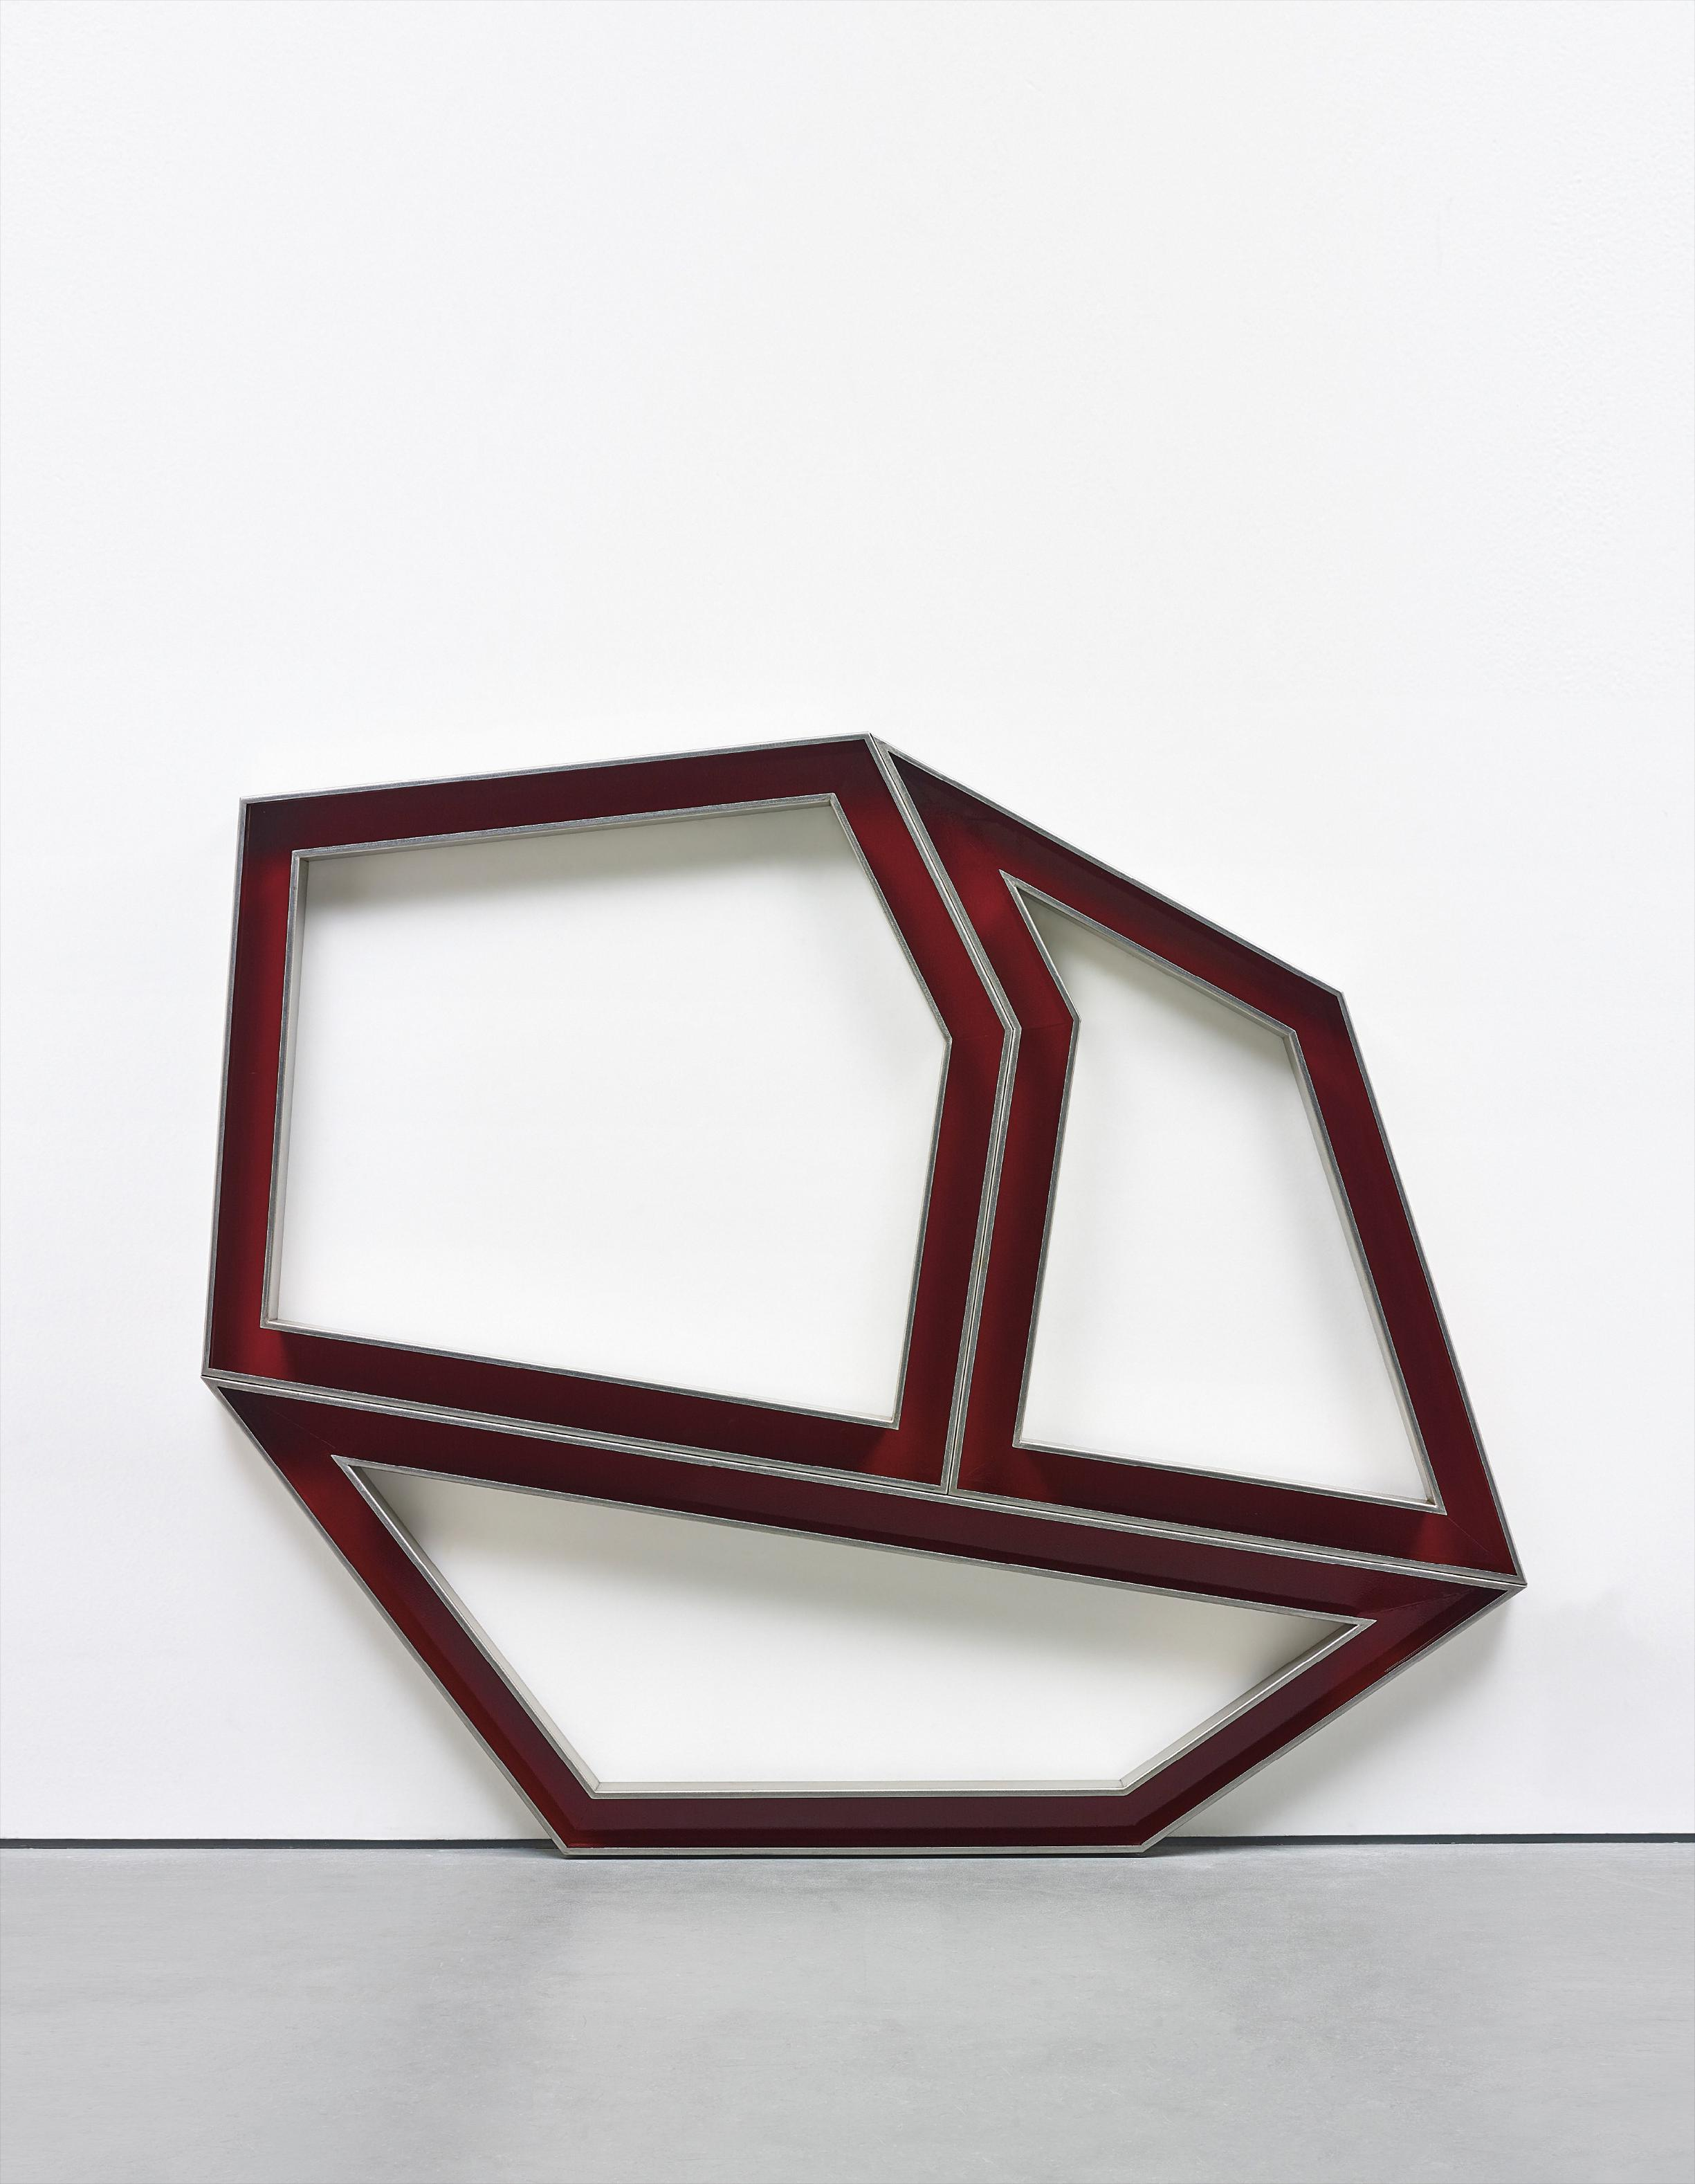 Richard Deacon-Alphabet T-2014